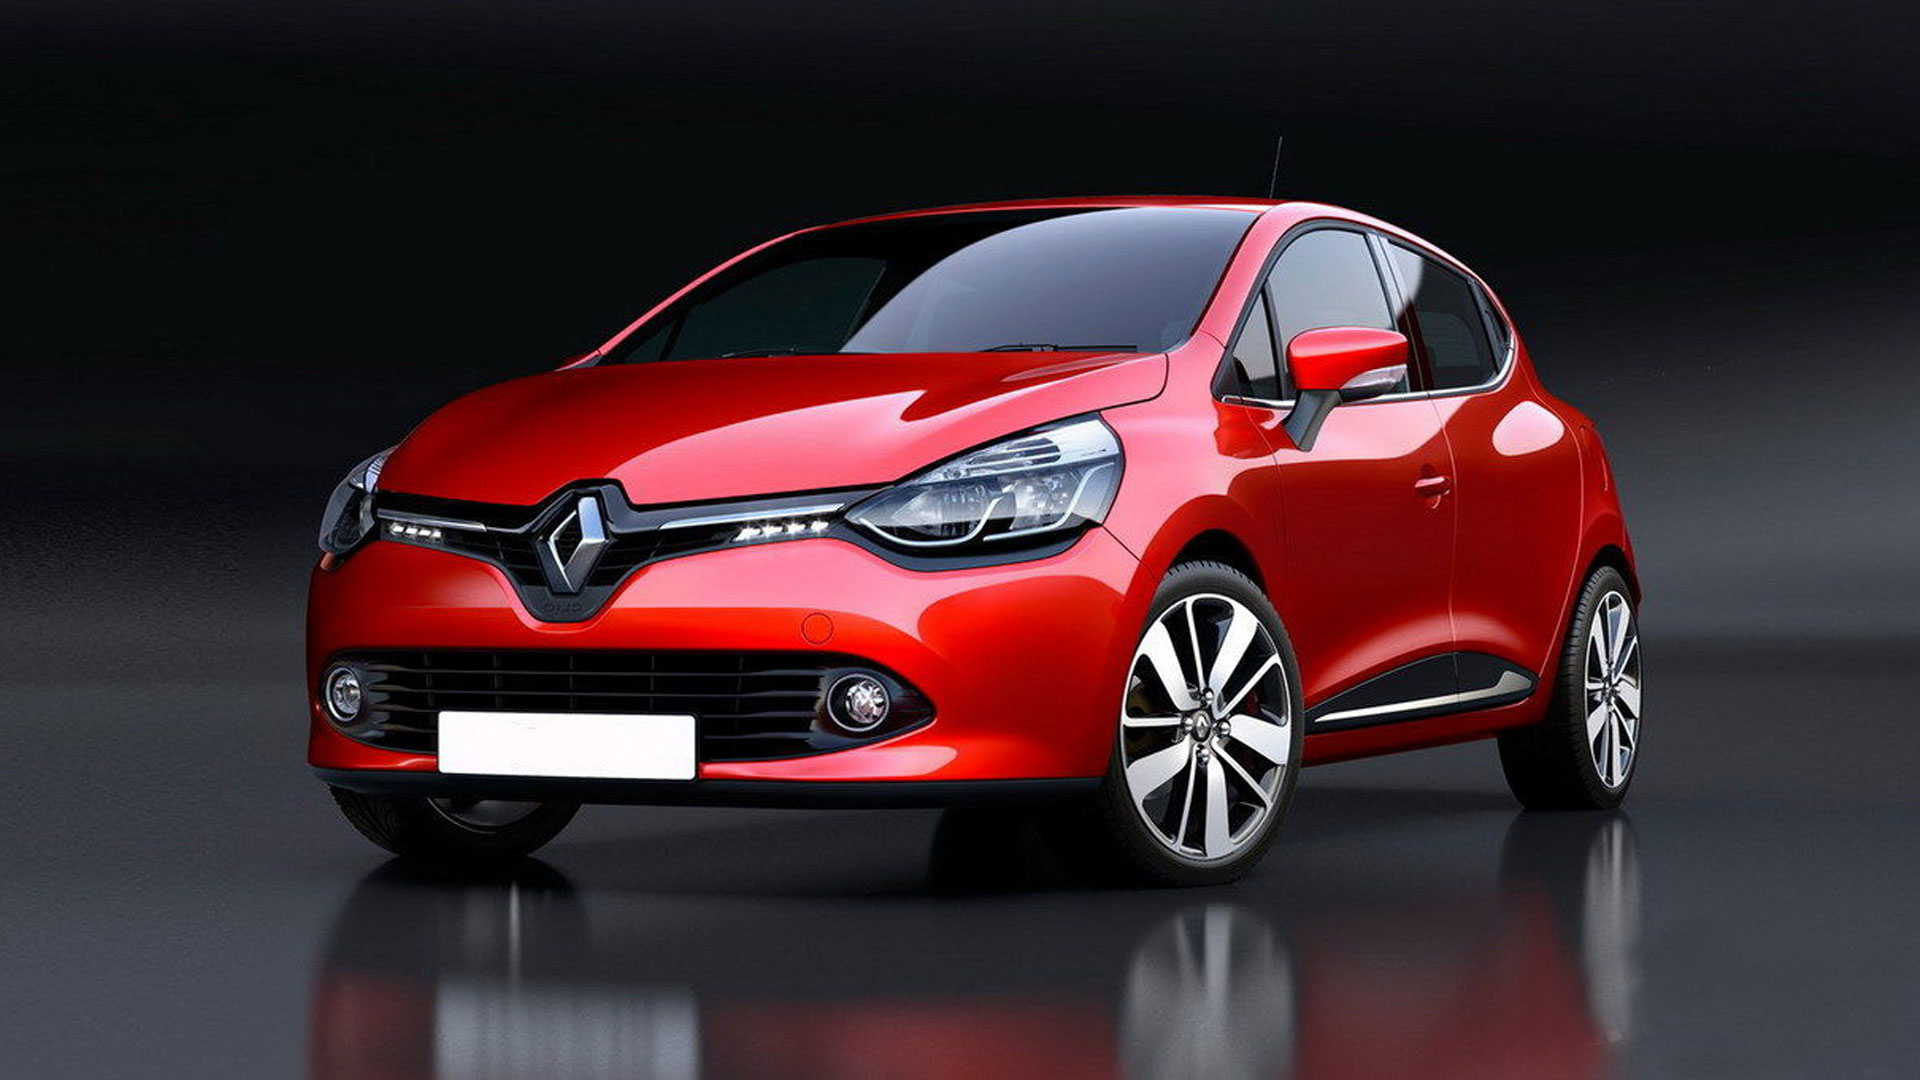 16 renault clio hd wallpapers background images wallpaper abyss. Black Bedroom Furniture Sets. Home Design Ideas